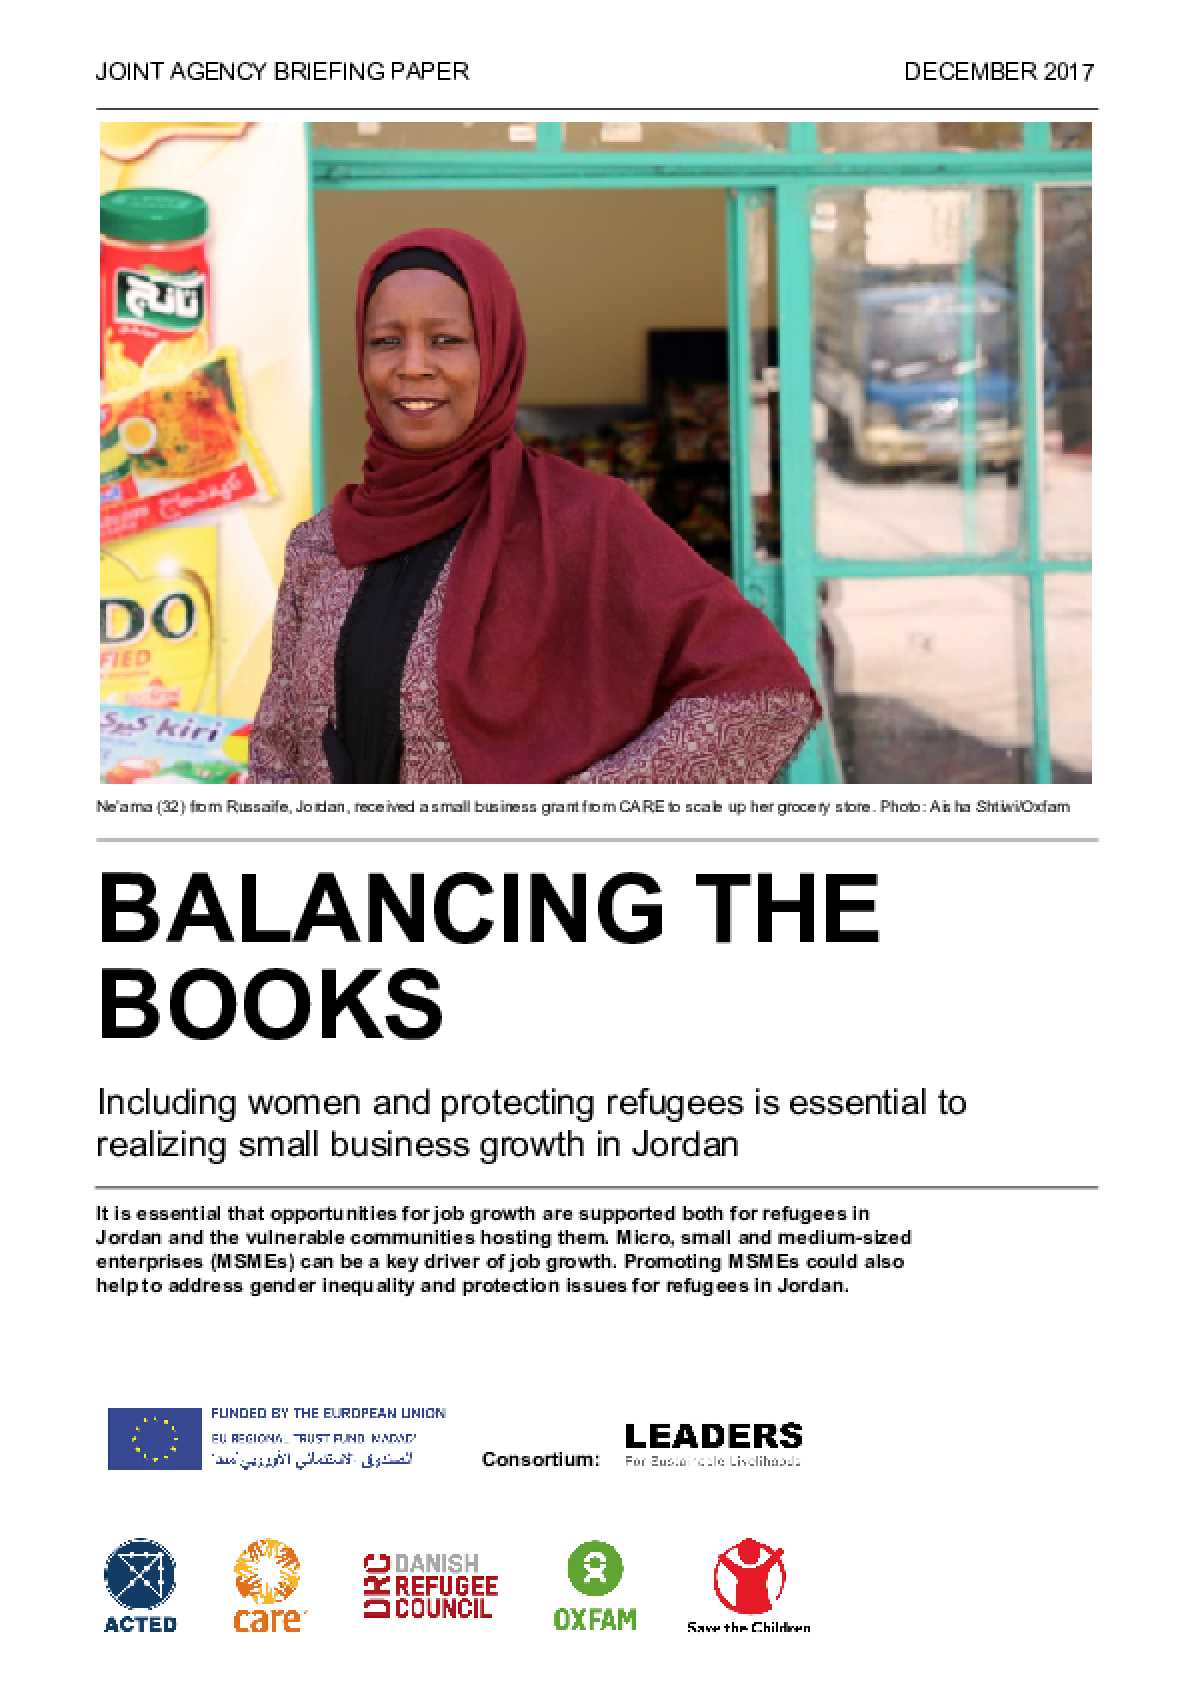 Balancing the Books: Including women and protecting refugees is essential to realizing small business growth in Jordan